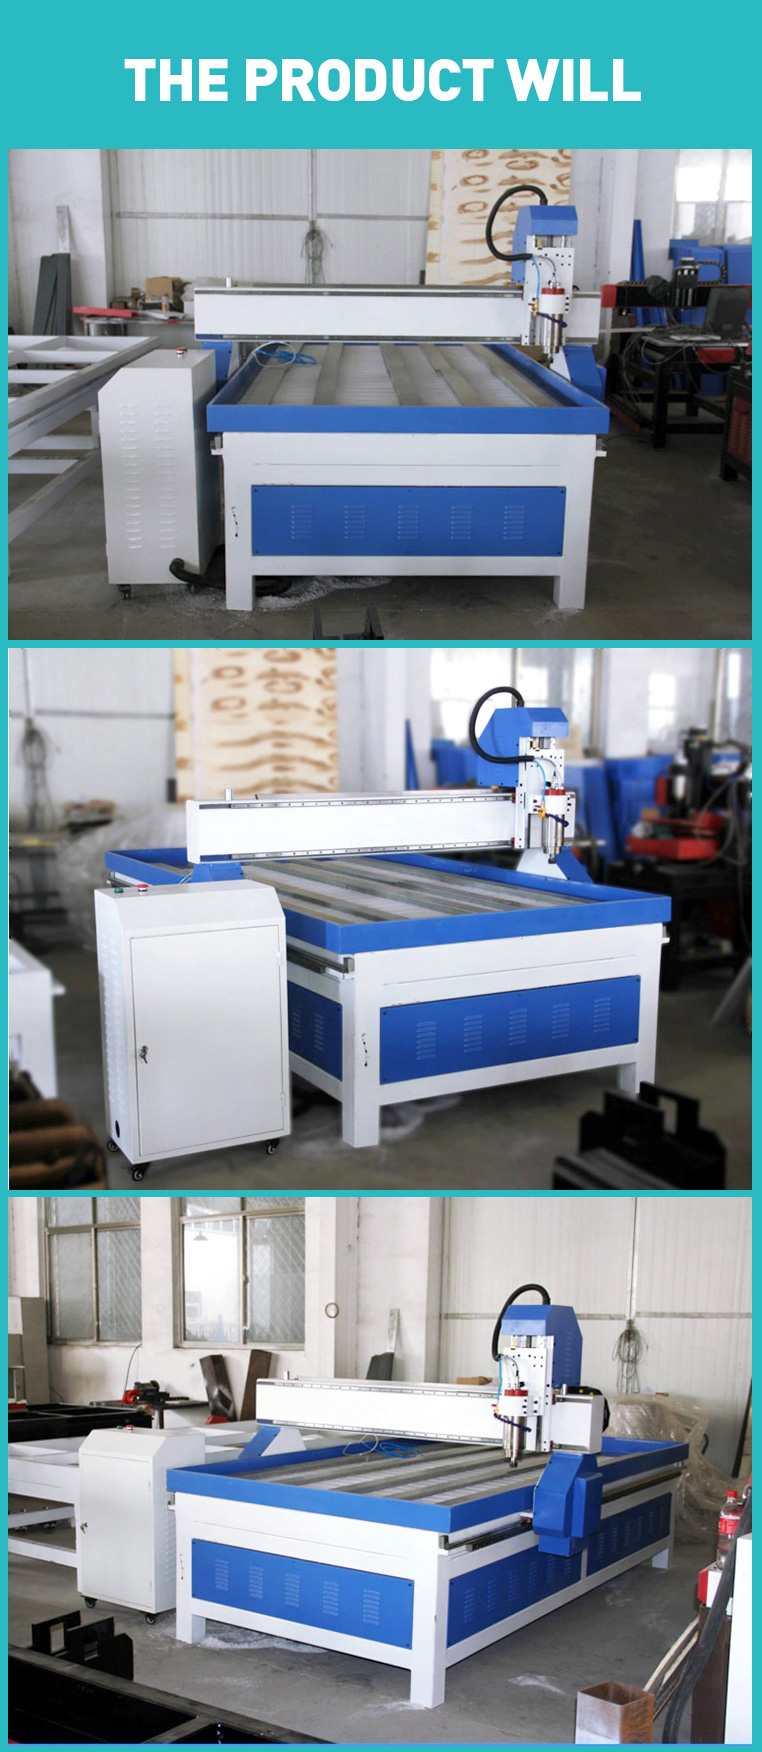 Songli 1325 3.2kw 3-axis woodworking stone carving machine Cheap CNC machinery